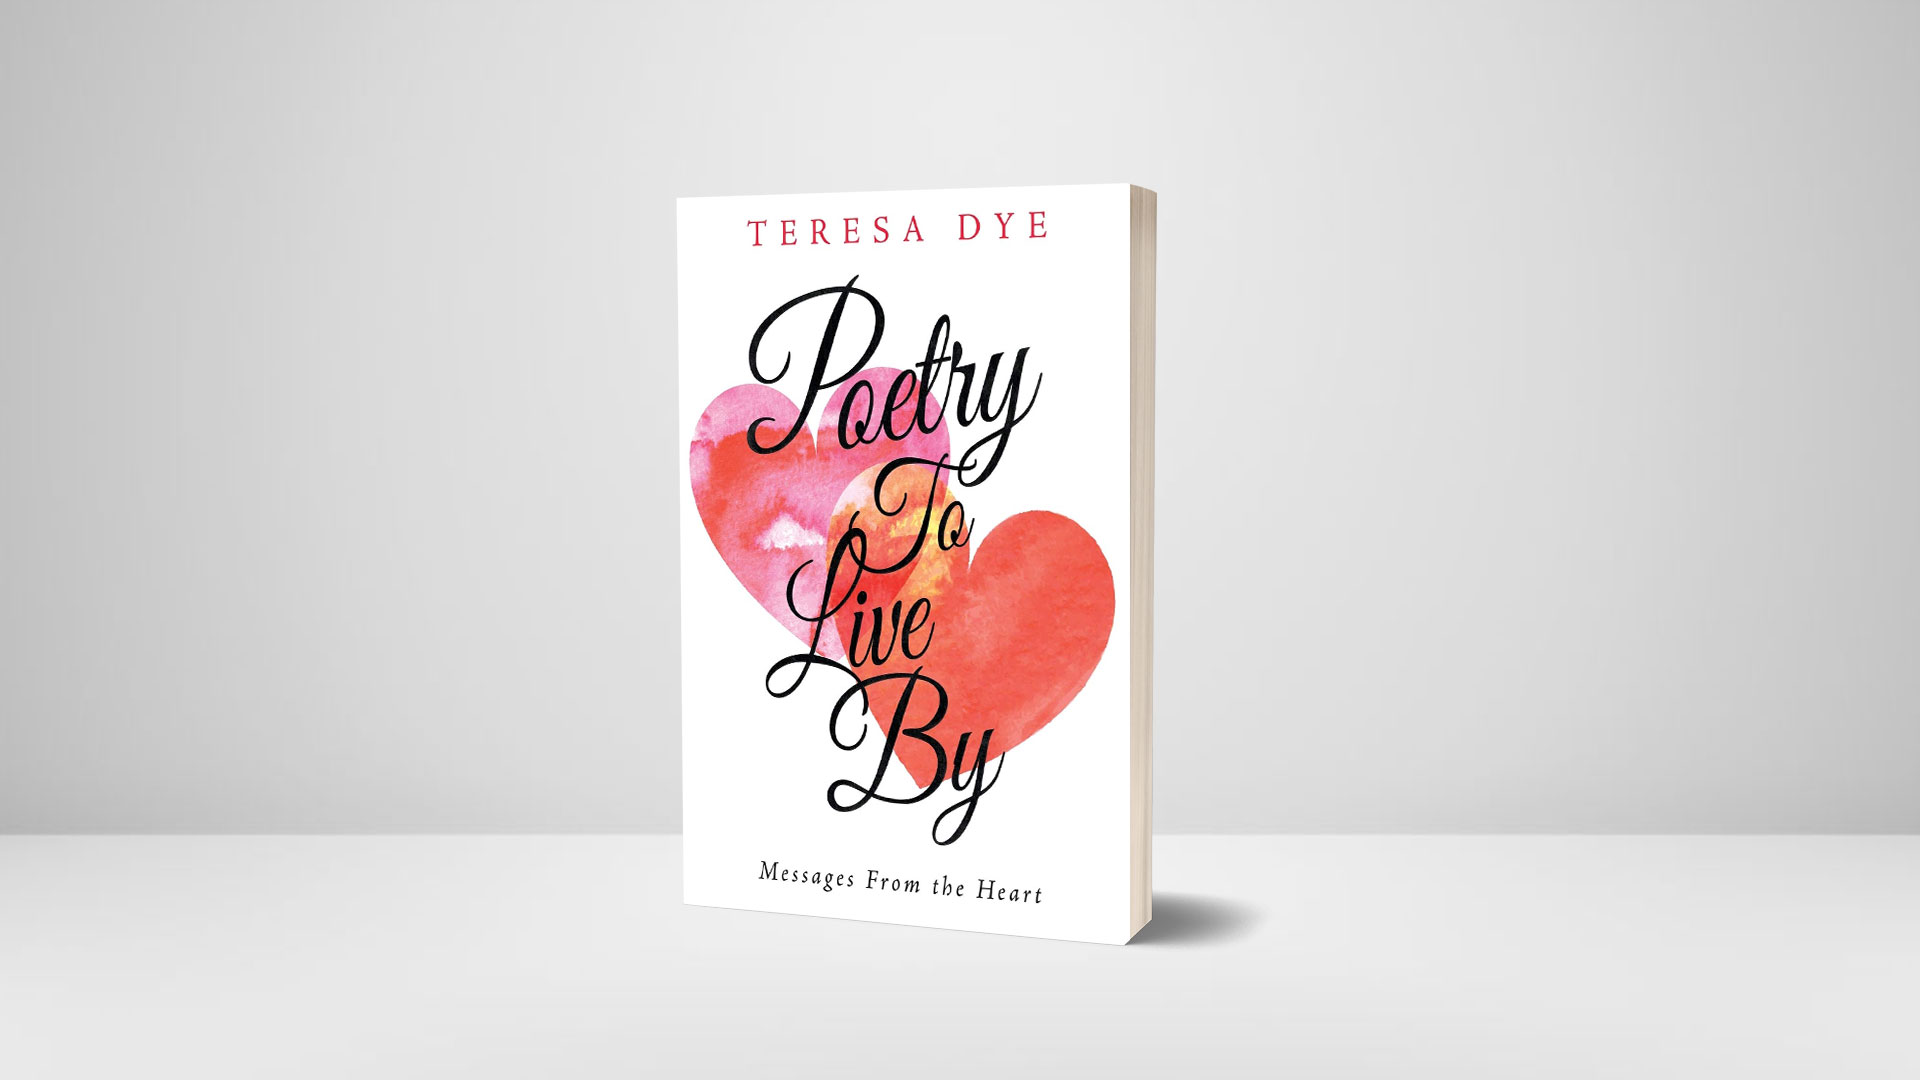 Poetry-to-Live-By-Messages-From-the-Heart-by-Teresa-Dye banner